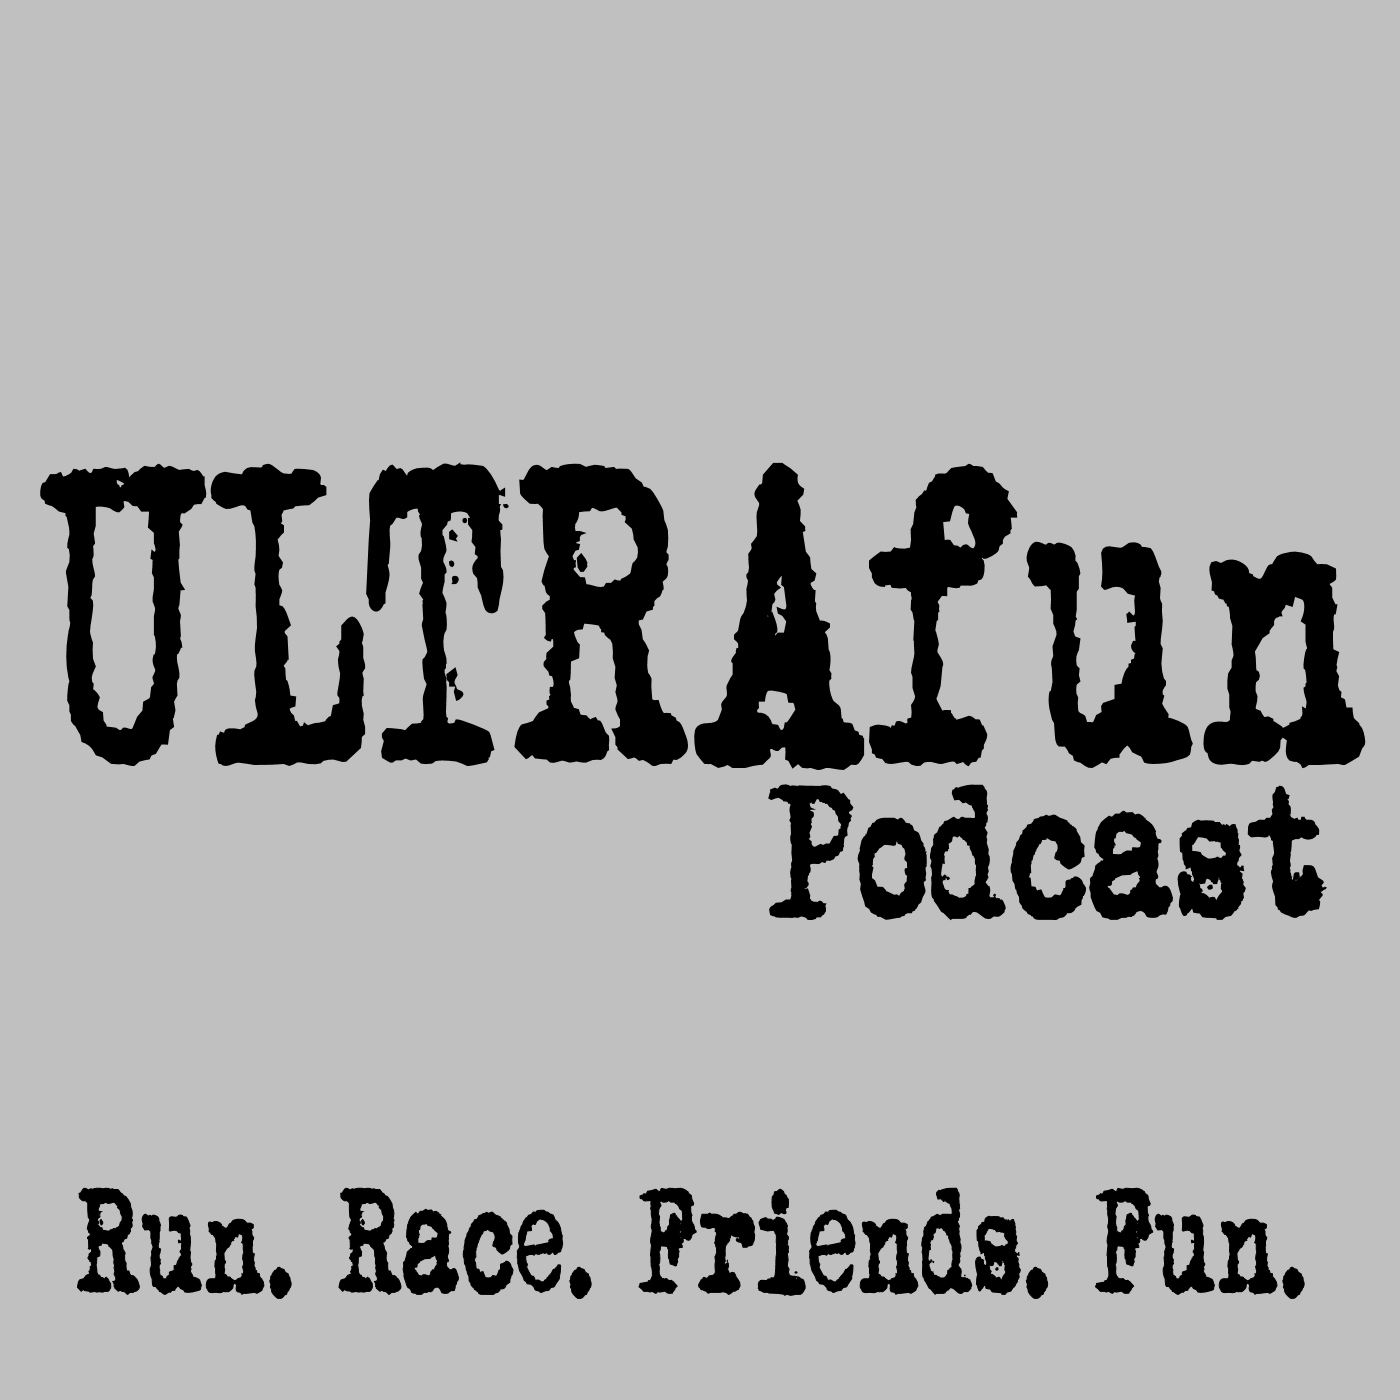 ULTRAfun Podcast Episode 2 - Oasis Aid Station Volunteers